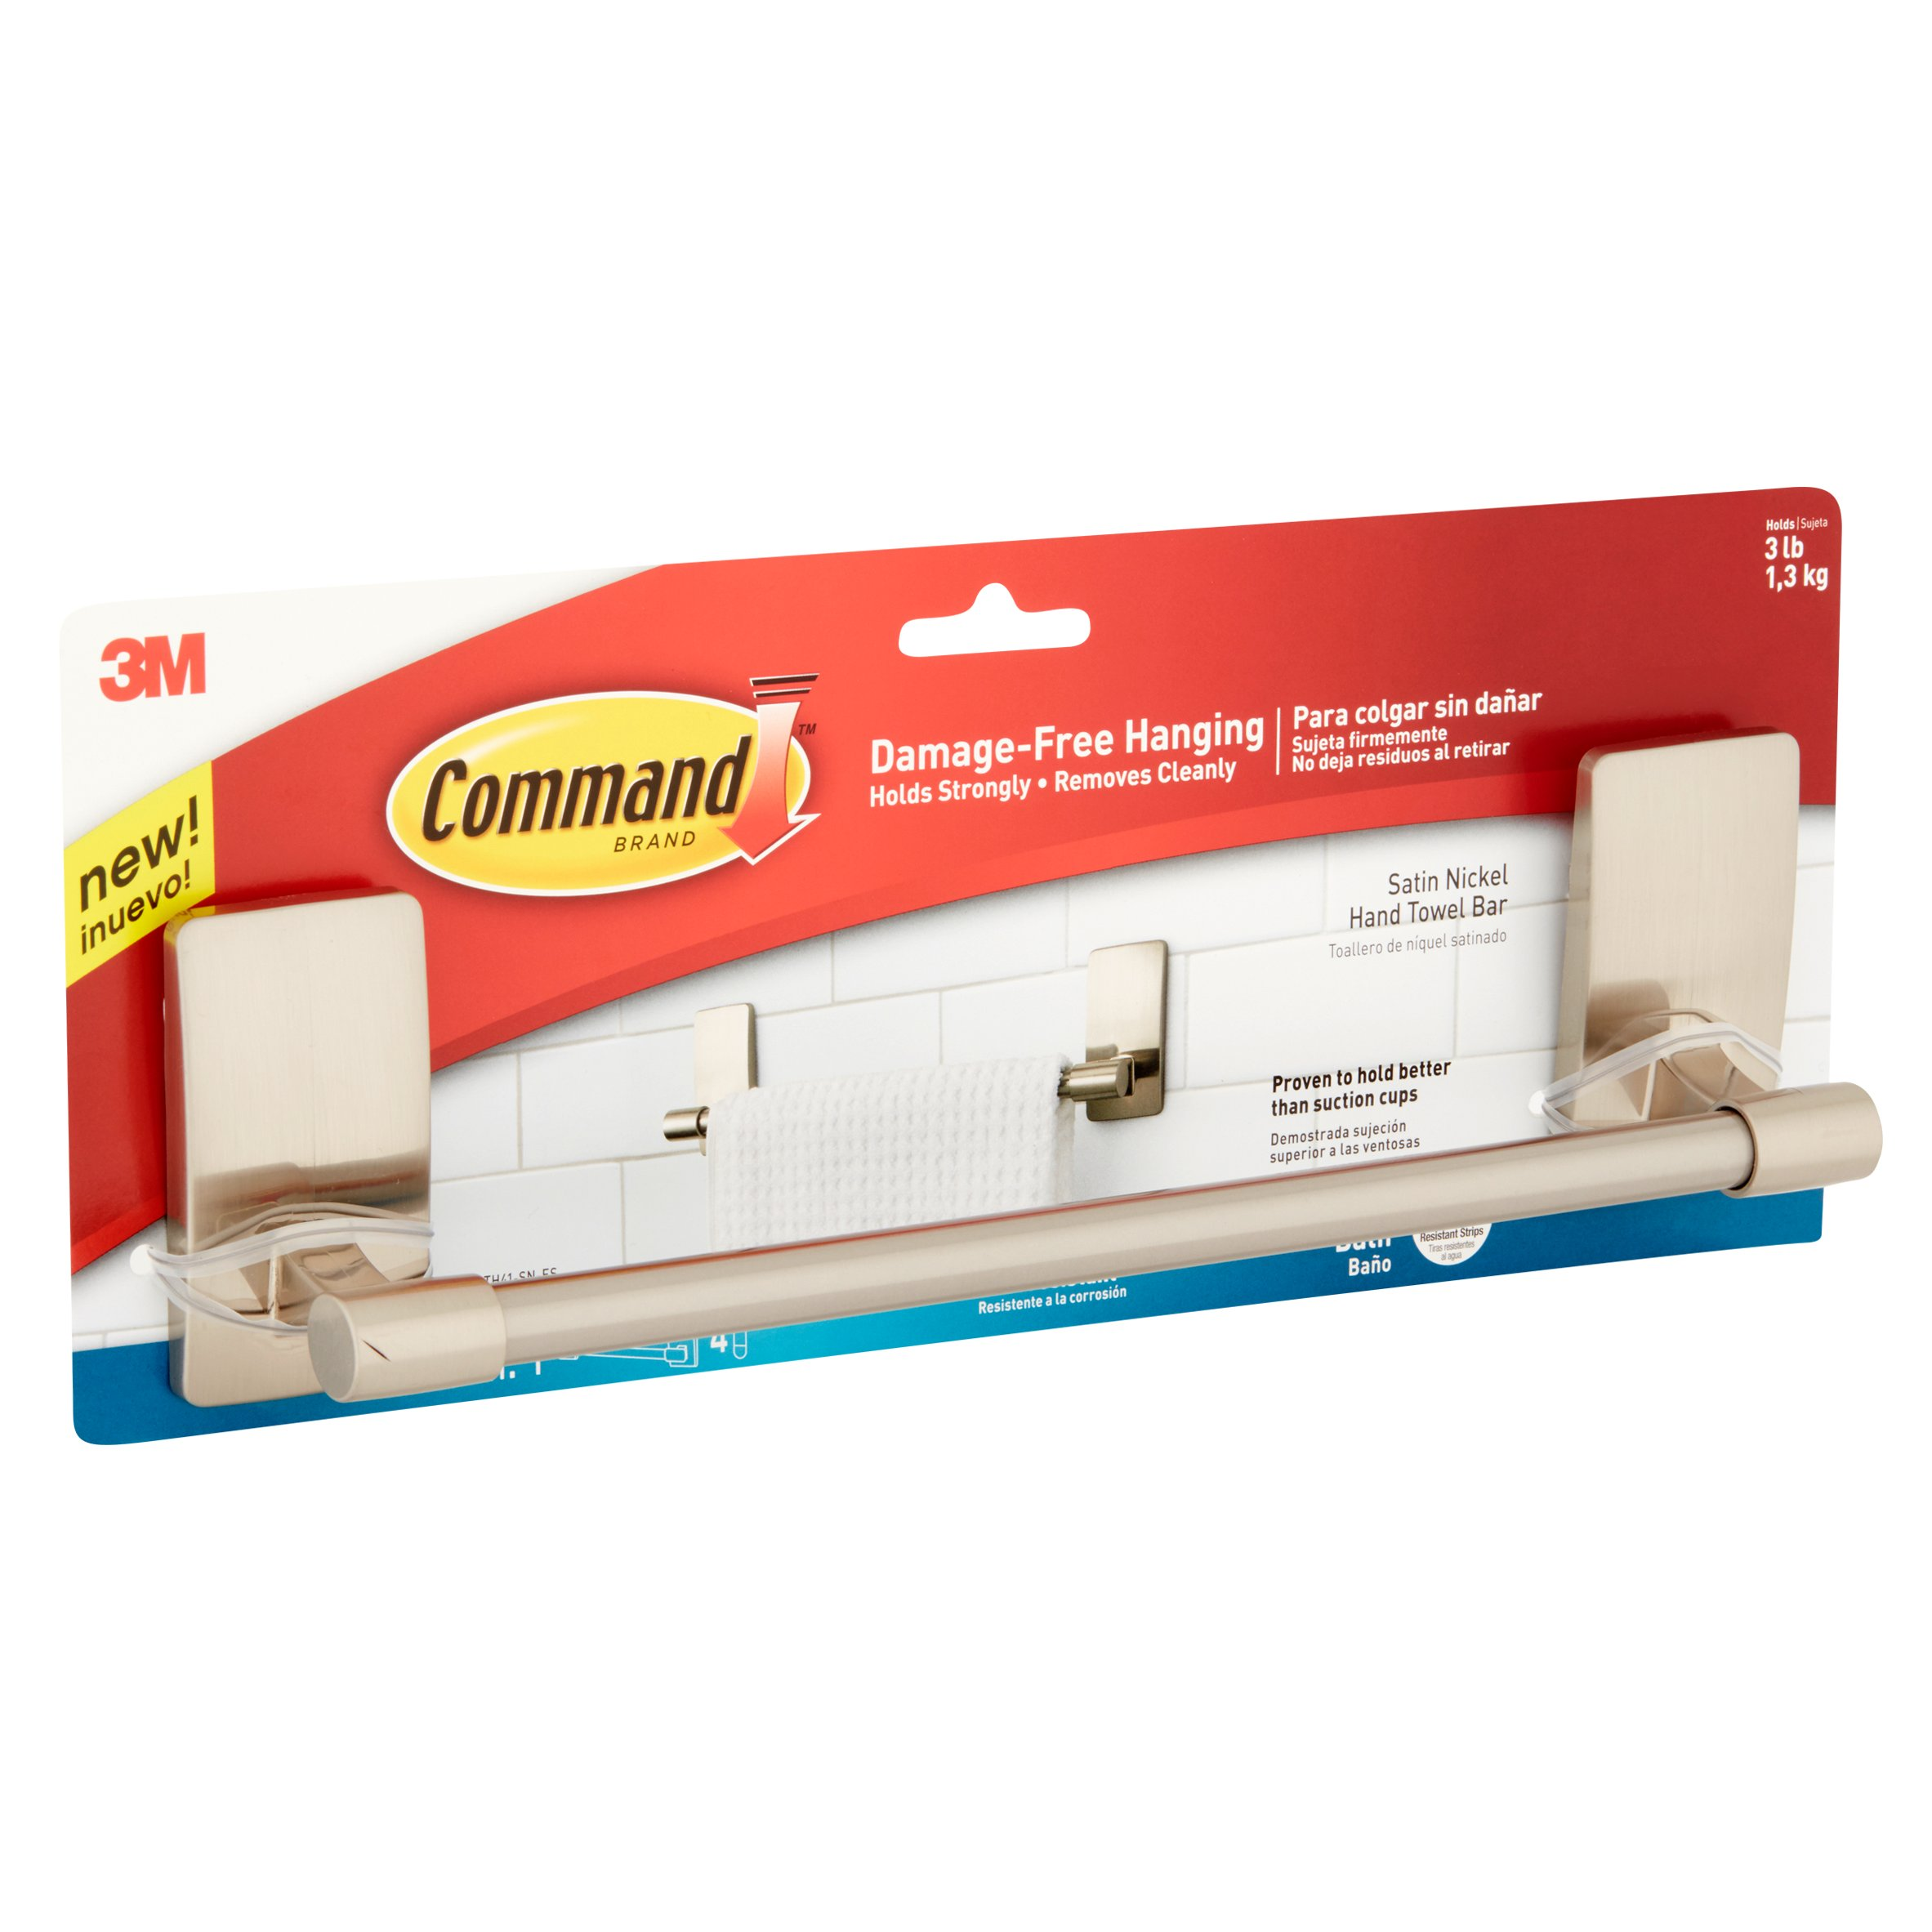 3m Command Damage Free Hand Towel Bar Hangs 3 Pounds Hang Without Tools 1 4 Strips Bath41 Sn Es